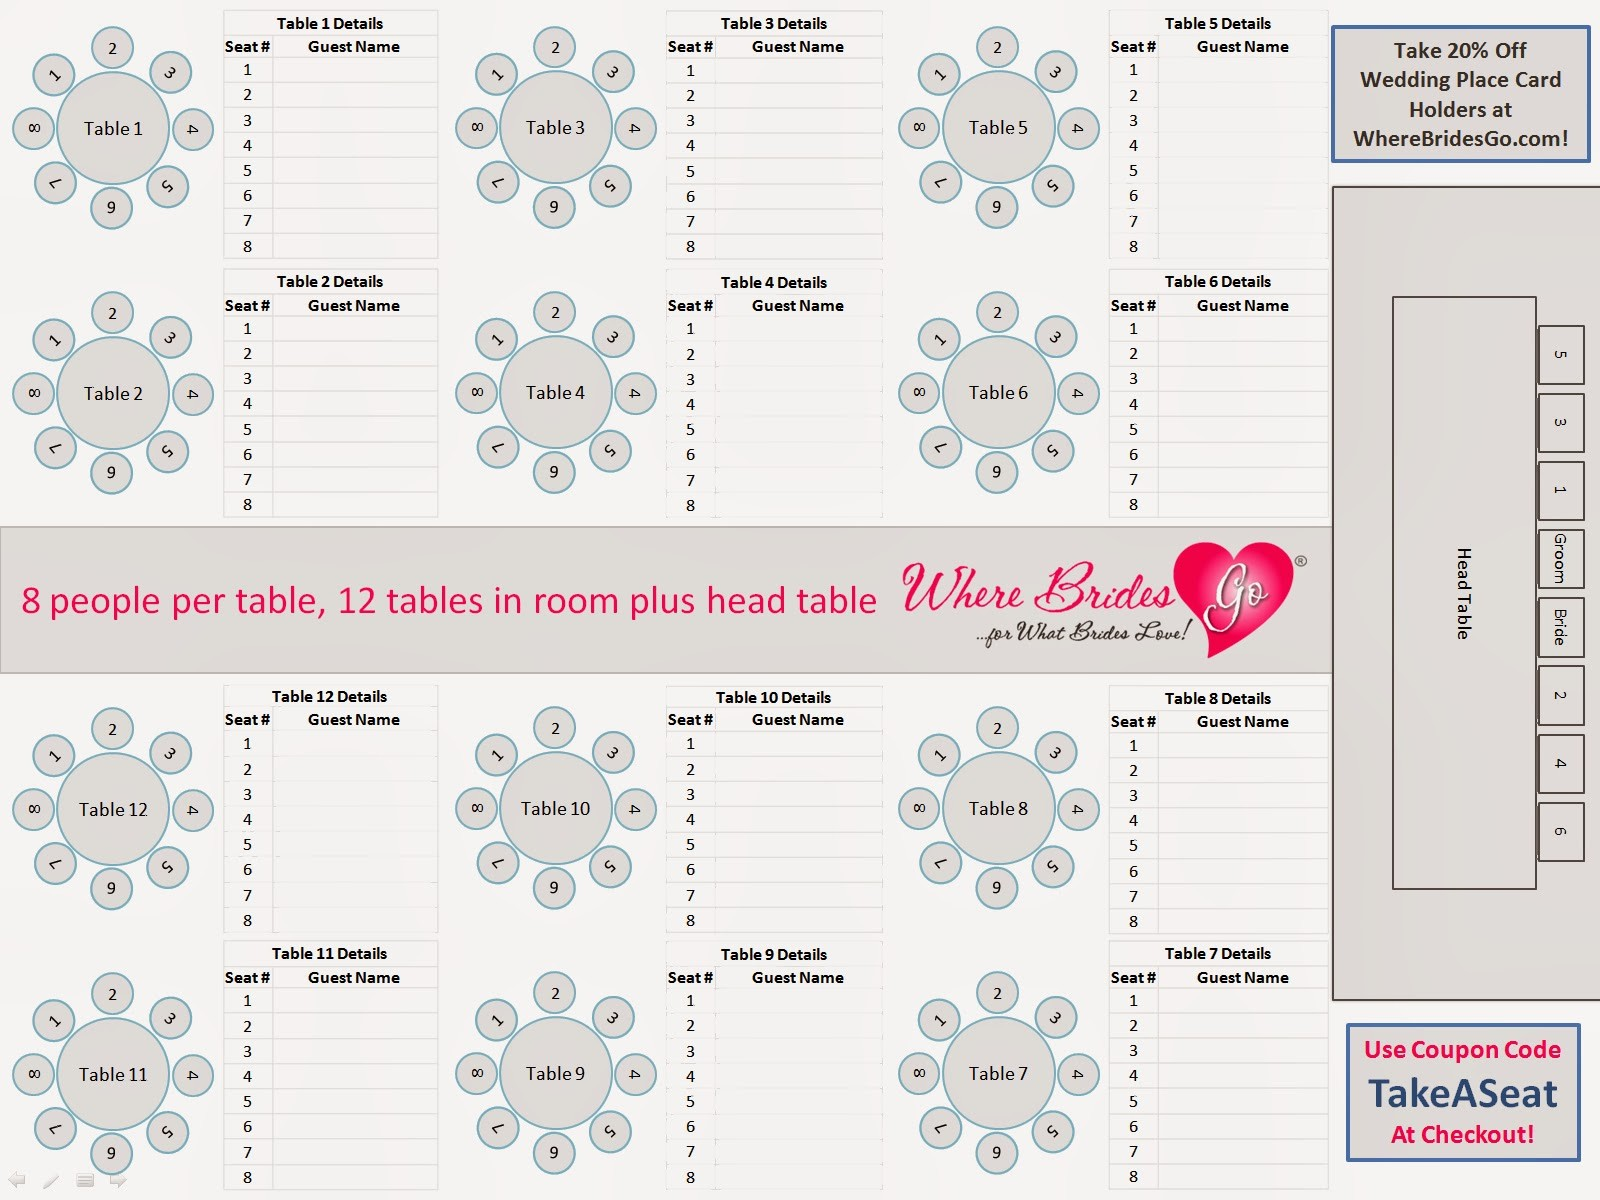 Wedding Table Seating Chart Template Unique Seating Chart for Wedding Reception Template